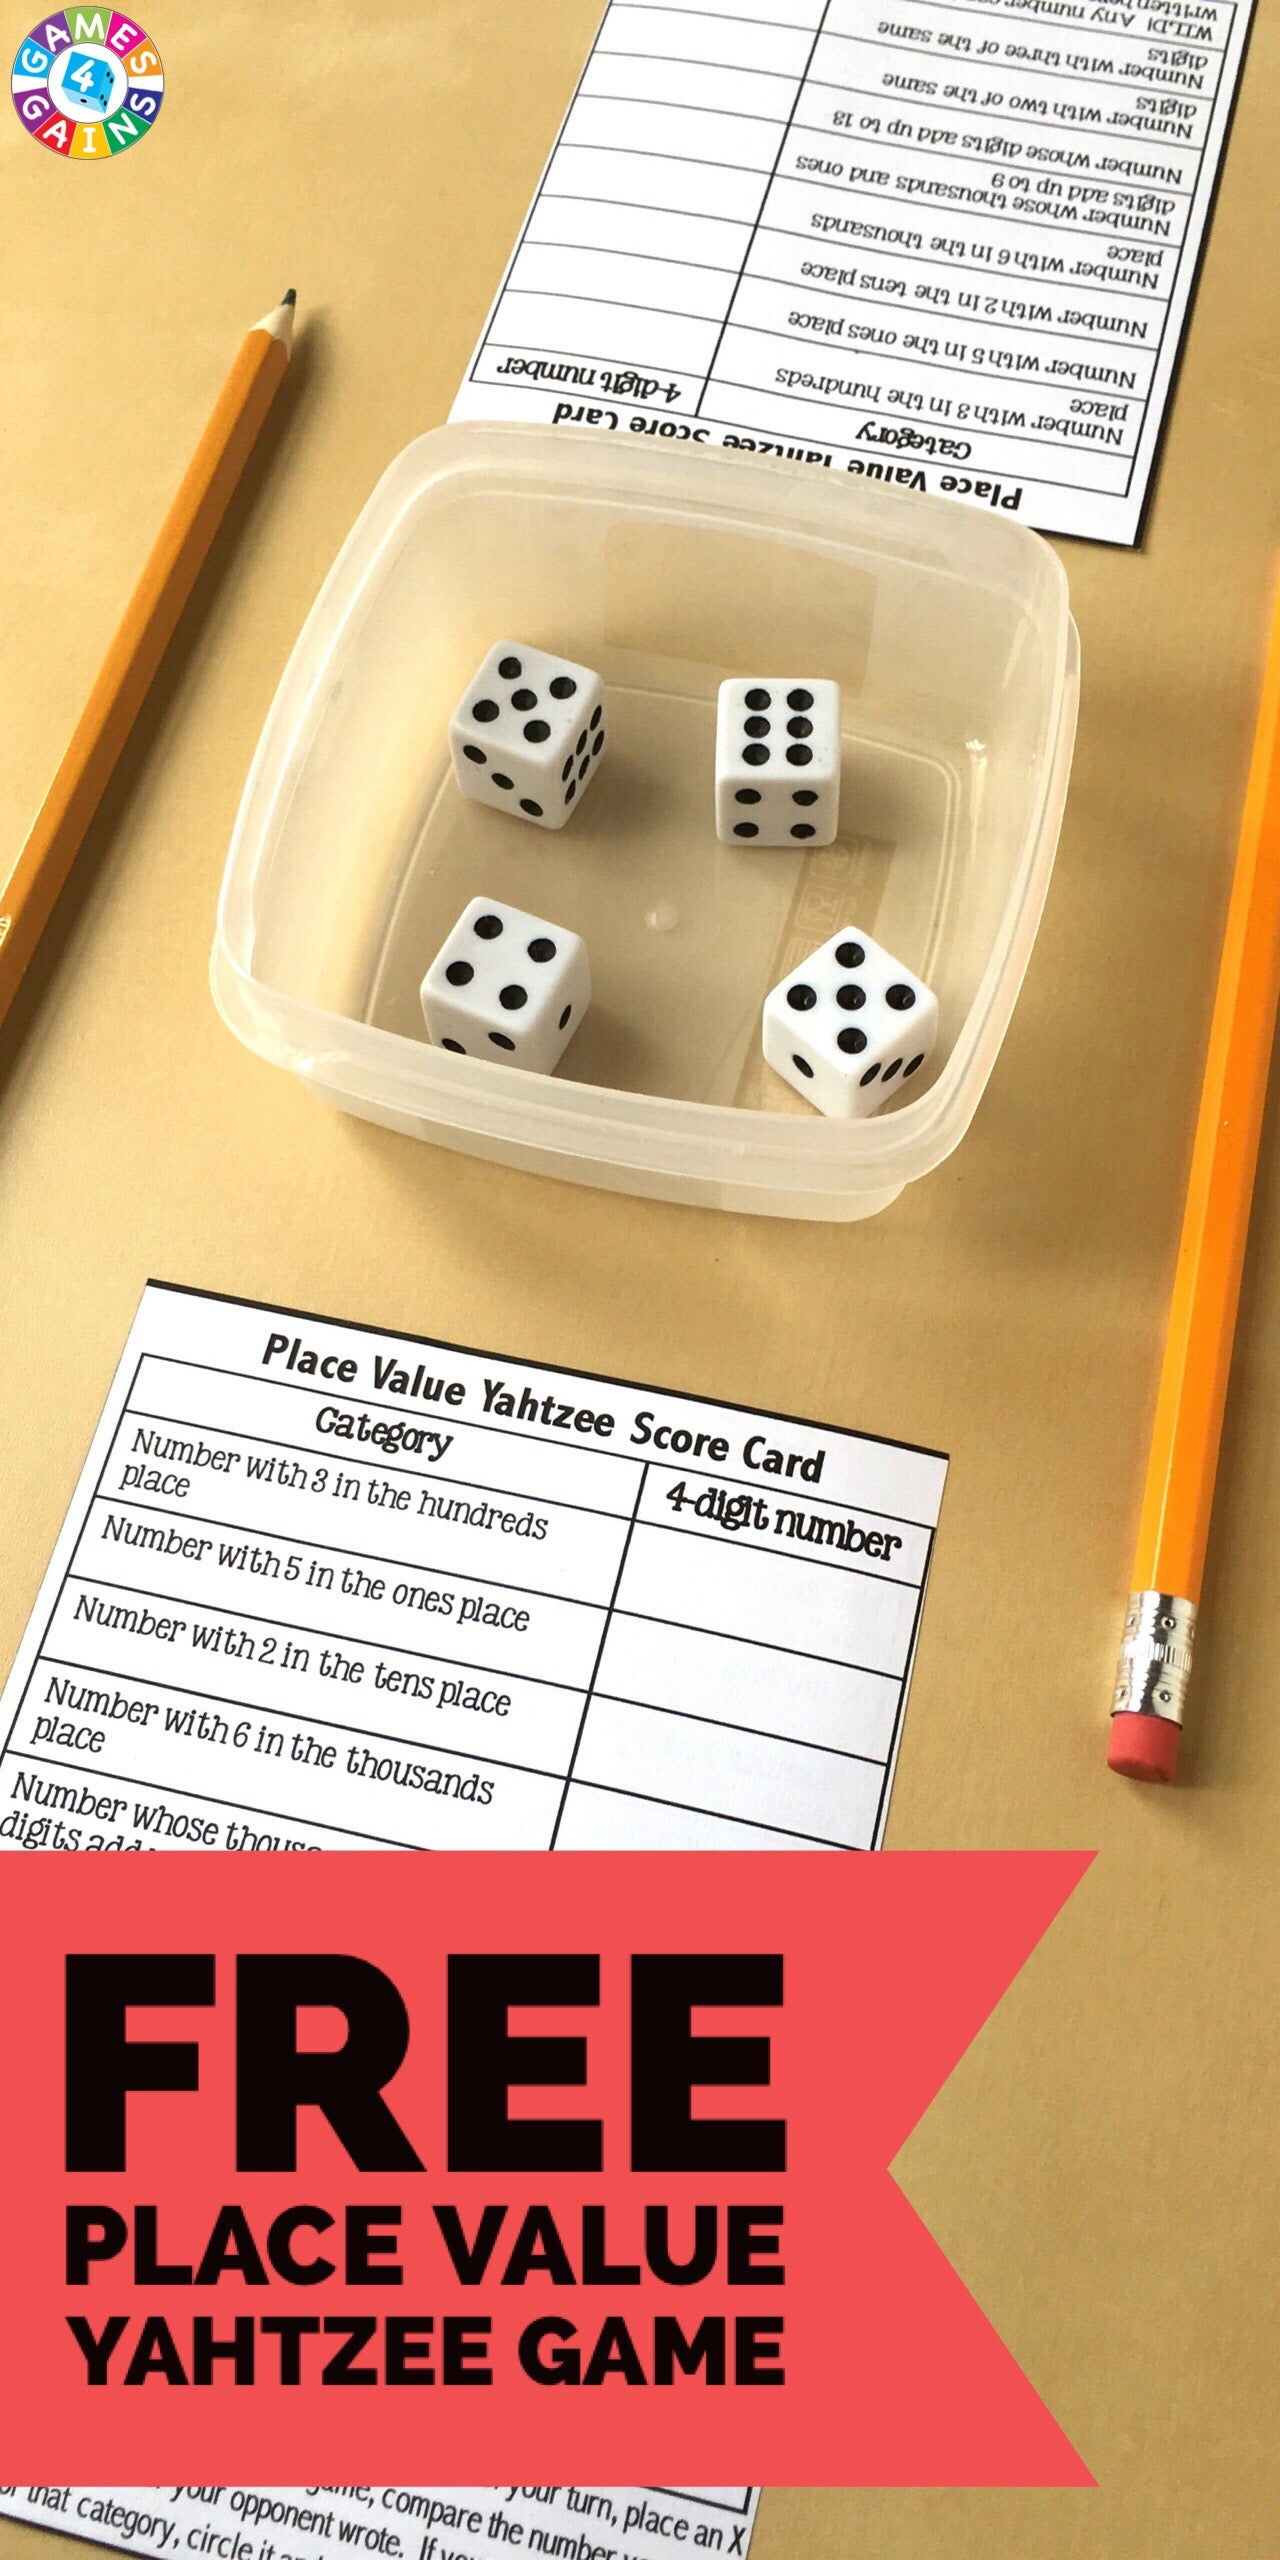 Free_Place_Value_Game  Ways To Do Math on ways to socialize, ways to listen, ways to tell time, ways to organize, ways to answer questions, ways to type, ways to text, ways to cook, ways to talk, ways to read, ways to solve problems, ways to draw, ways to spell words, ways to think, ways to dance,